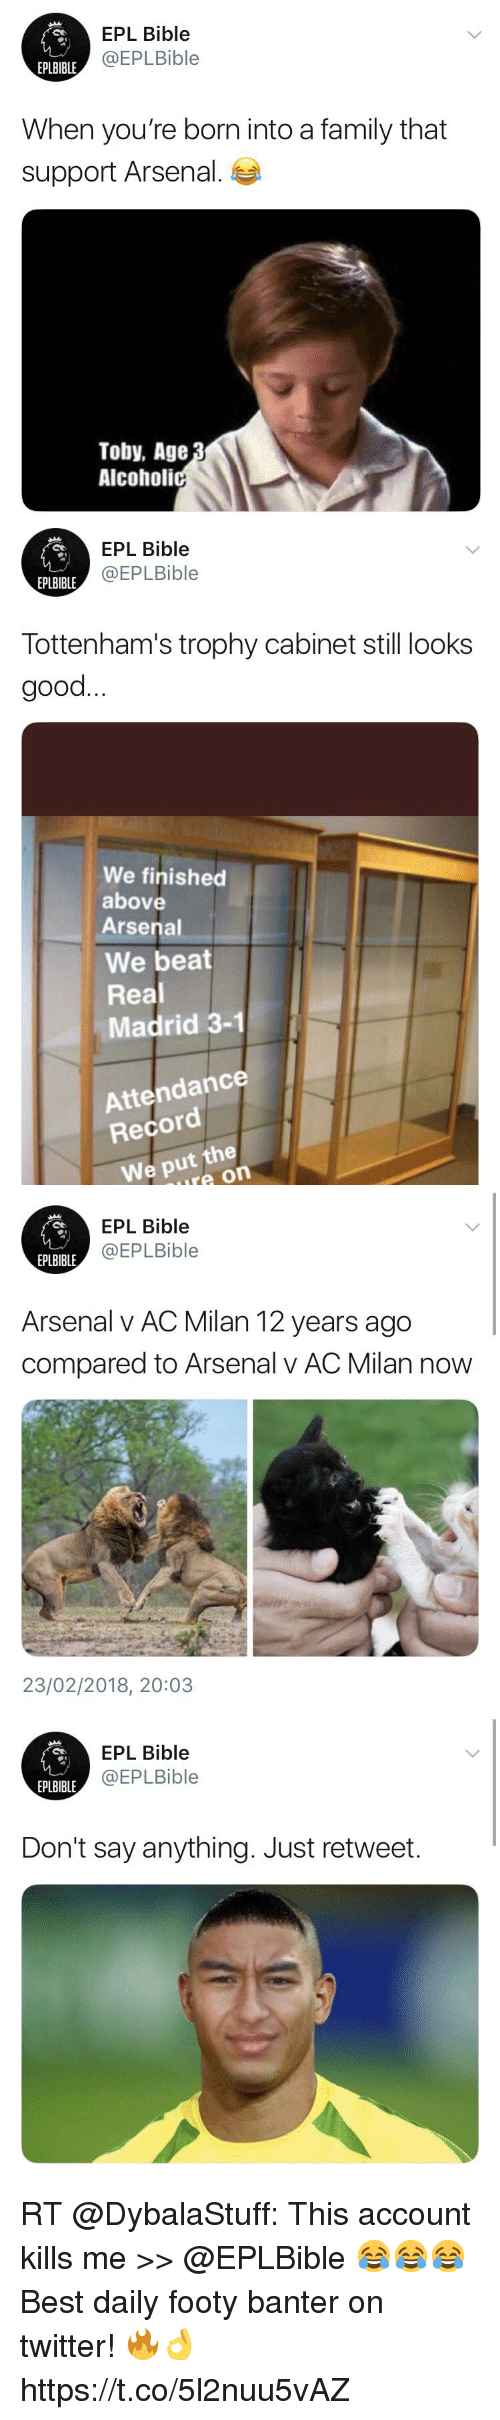 Arsenal, Family, and Memes: EPL Bible  @EPLBible  EPLBIBLE  When you're born into a family that  support Arsenal.  Toby, Age  Alcoholi   EPL Bible  @EPLBible  EPLBIBLE  Tottenham's trophy cabinet still looks  good  We finished  above  Arsenal  We beat  Real  Madrid 3-1  Attendance  Record  We put the  ure on   EPL Bible  @EPLBible  EPLBIBLE  Arsenal v AC Milan 12 years ago  compared to Arsenal v AC Milan now  23/02/2018, 20:03   EPL Bible  @EPLBible  EPLBIBLE  Don't say anything. Just retweet. RT @DybalaStuff: This account kills me >> @EPLBible 😂😂😂   Best daily footy banter on twitter! 🔥👌 https://t.co/5l2nuu5vAZ